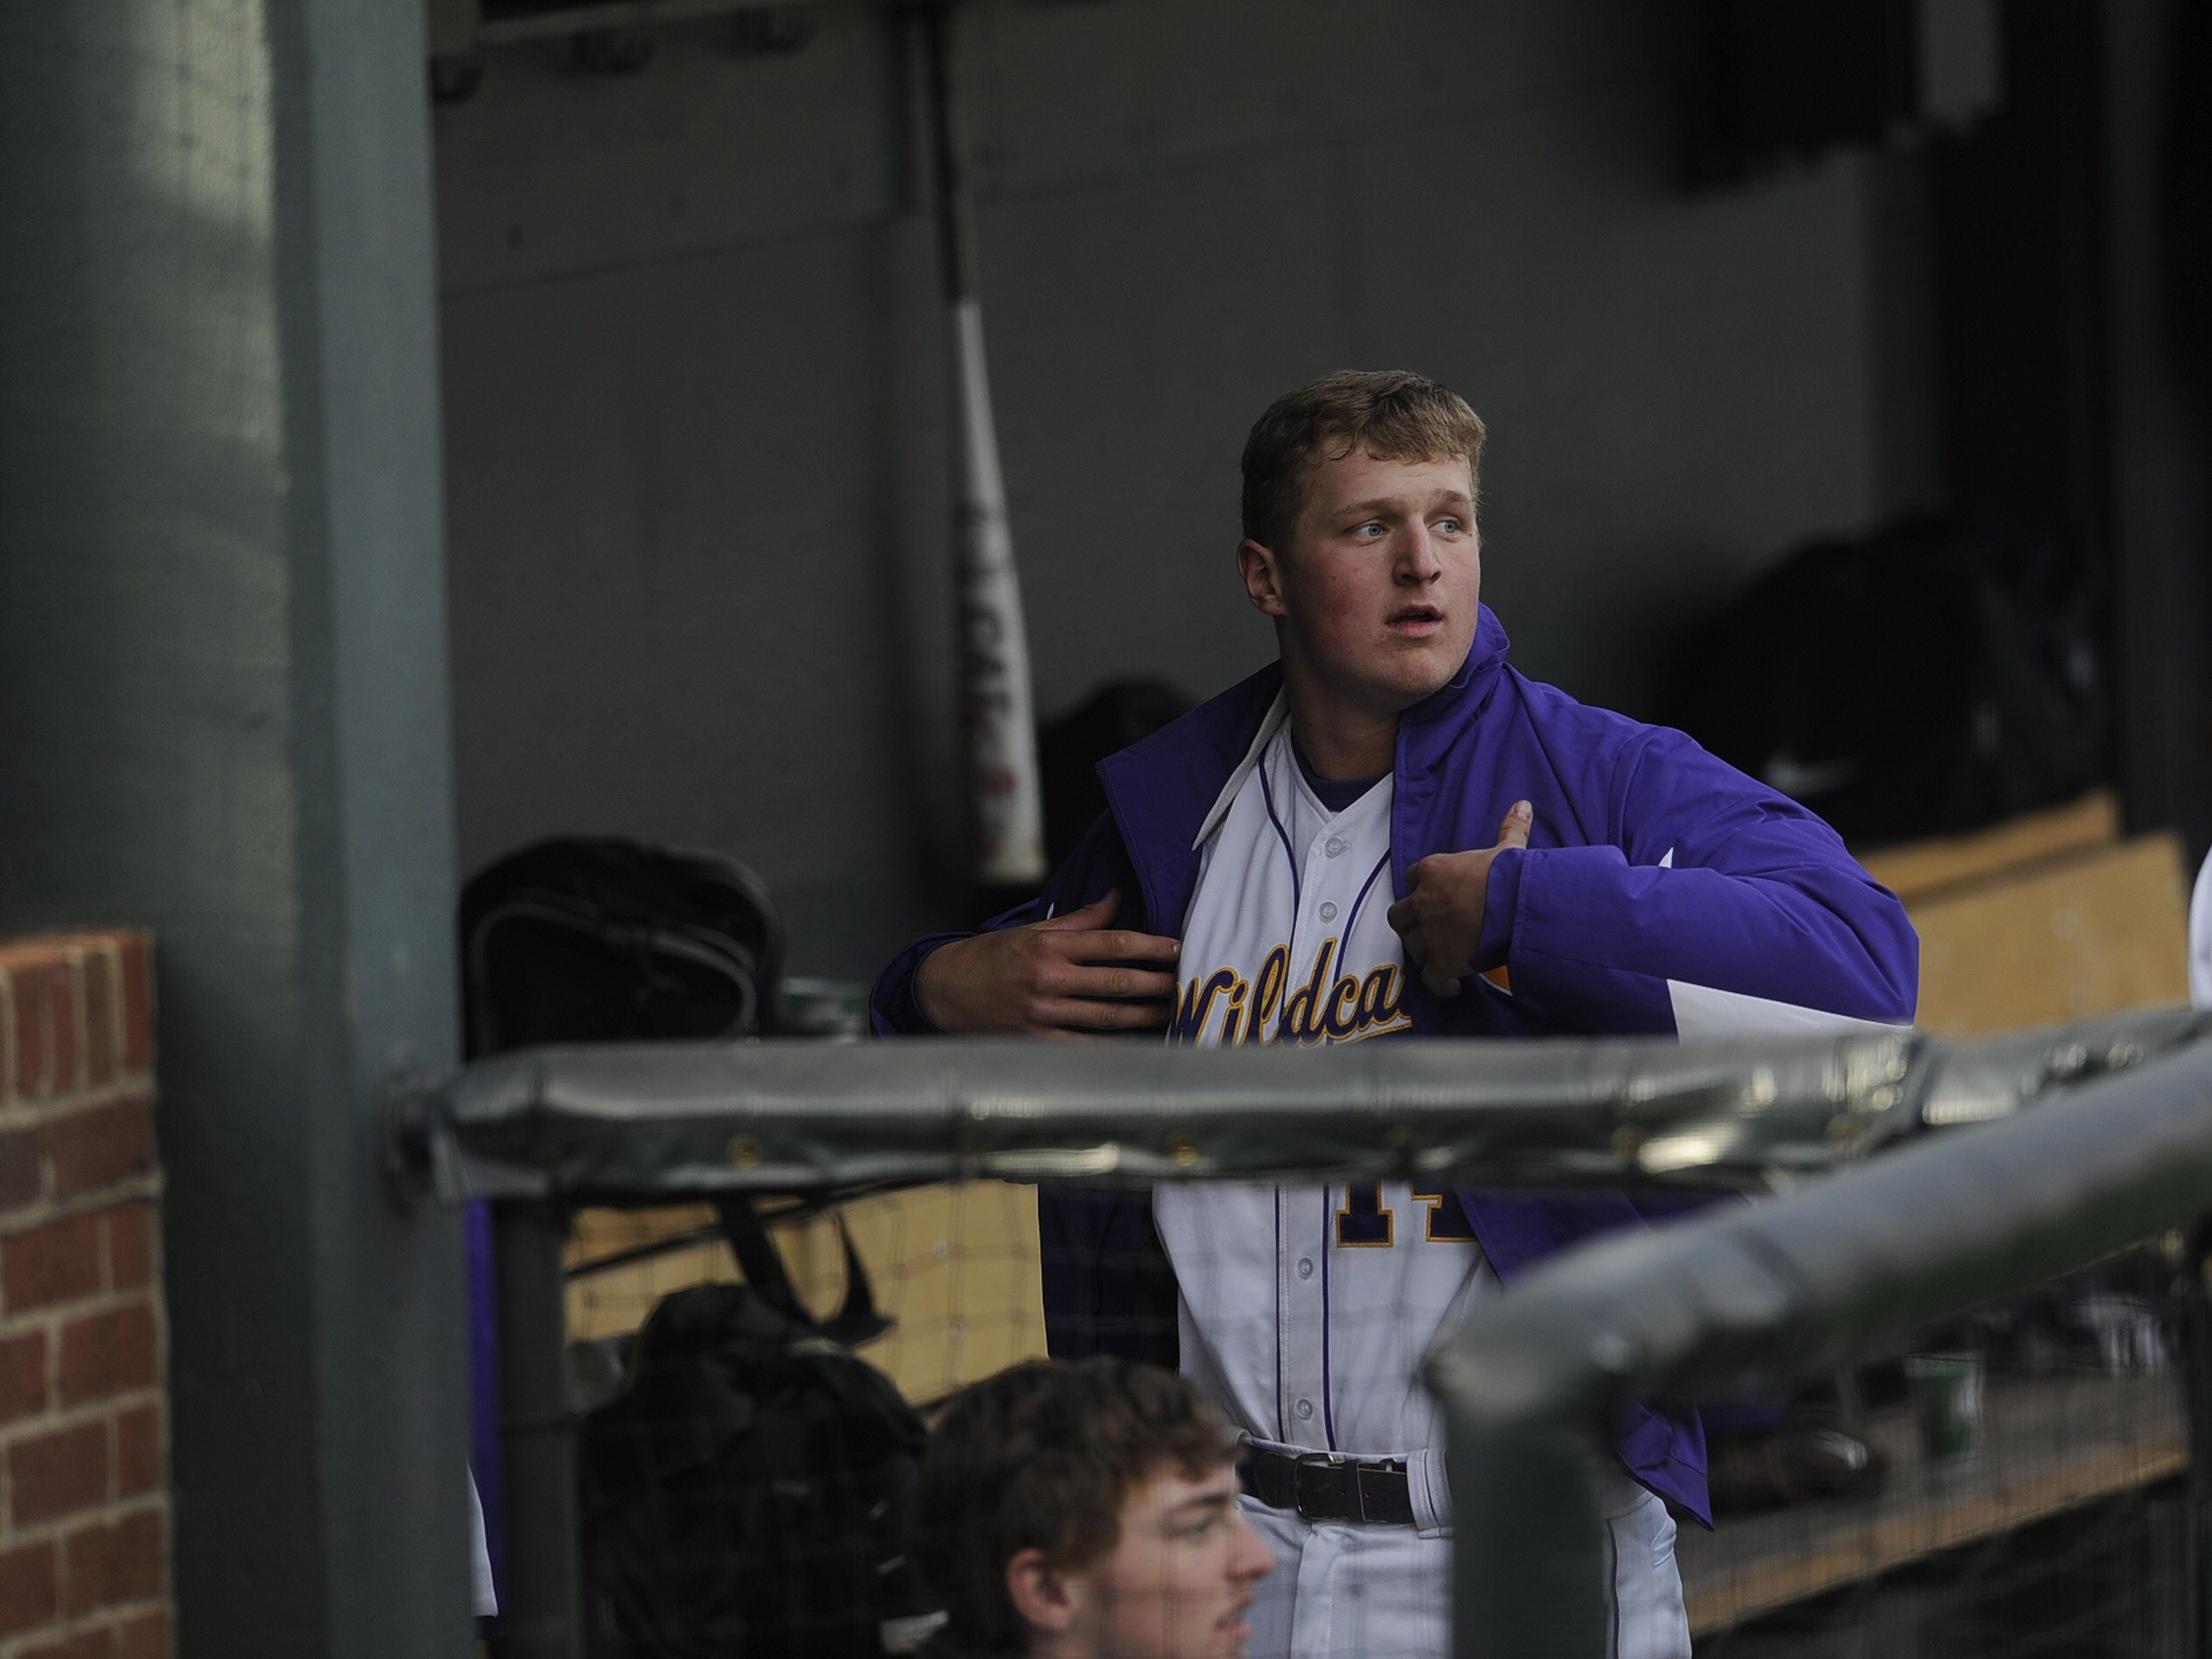 Clarksville's Donny Everett (14) puts on his jacket in the dugout during a game against Northwest last year at Vanderbilt. Everett was drafted in the 29th round Wednesday by the Milwaukee Brewers.